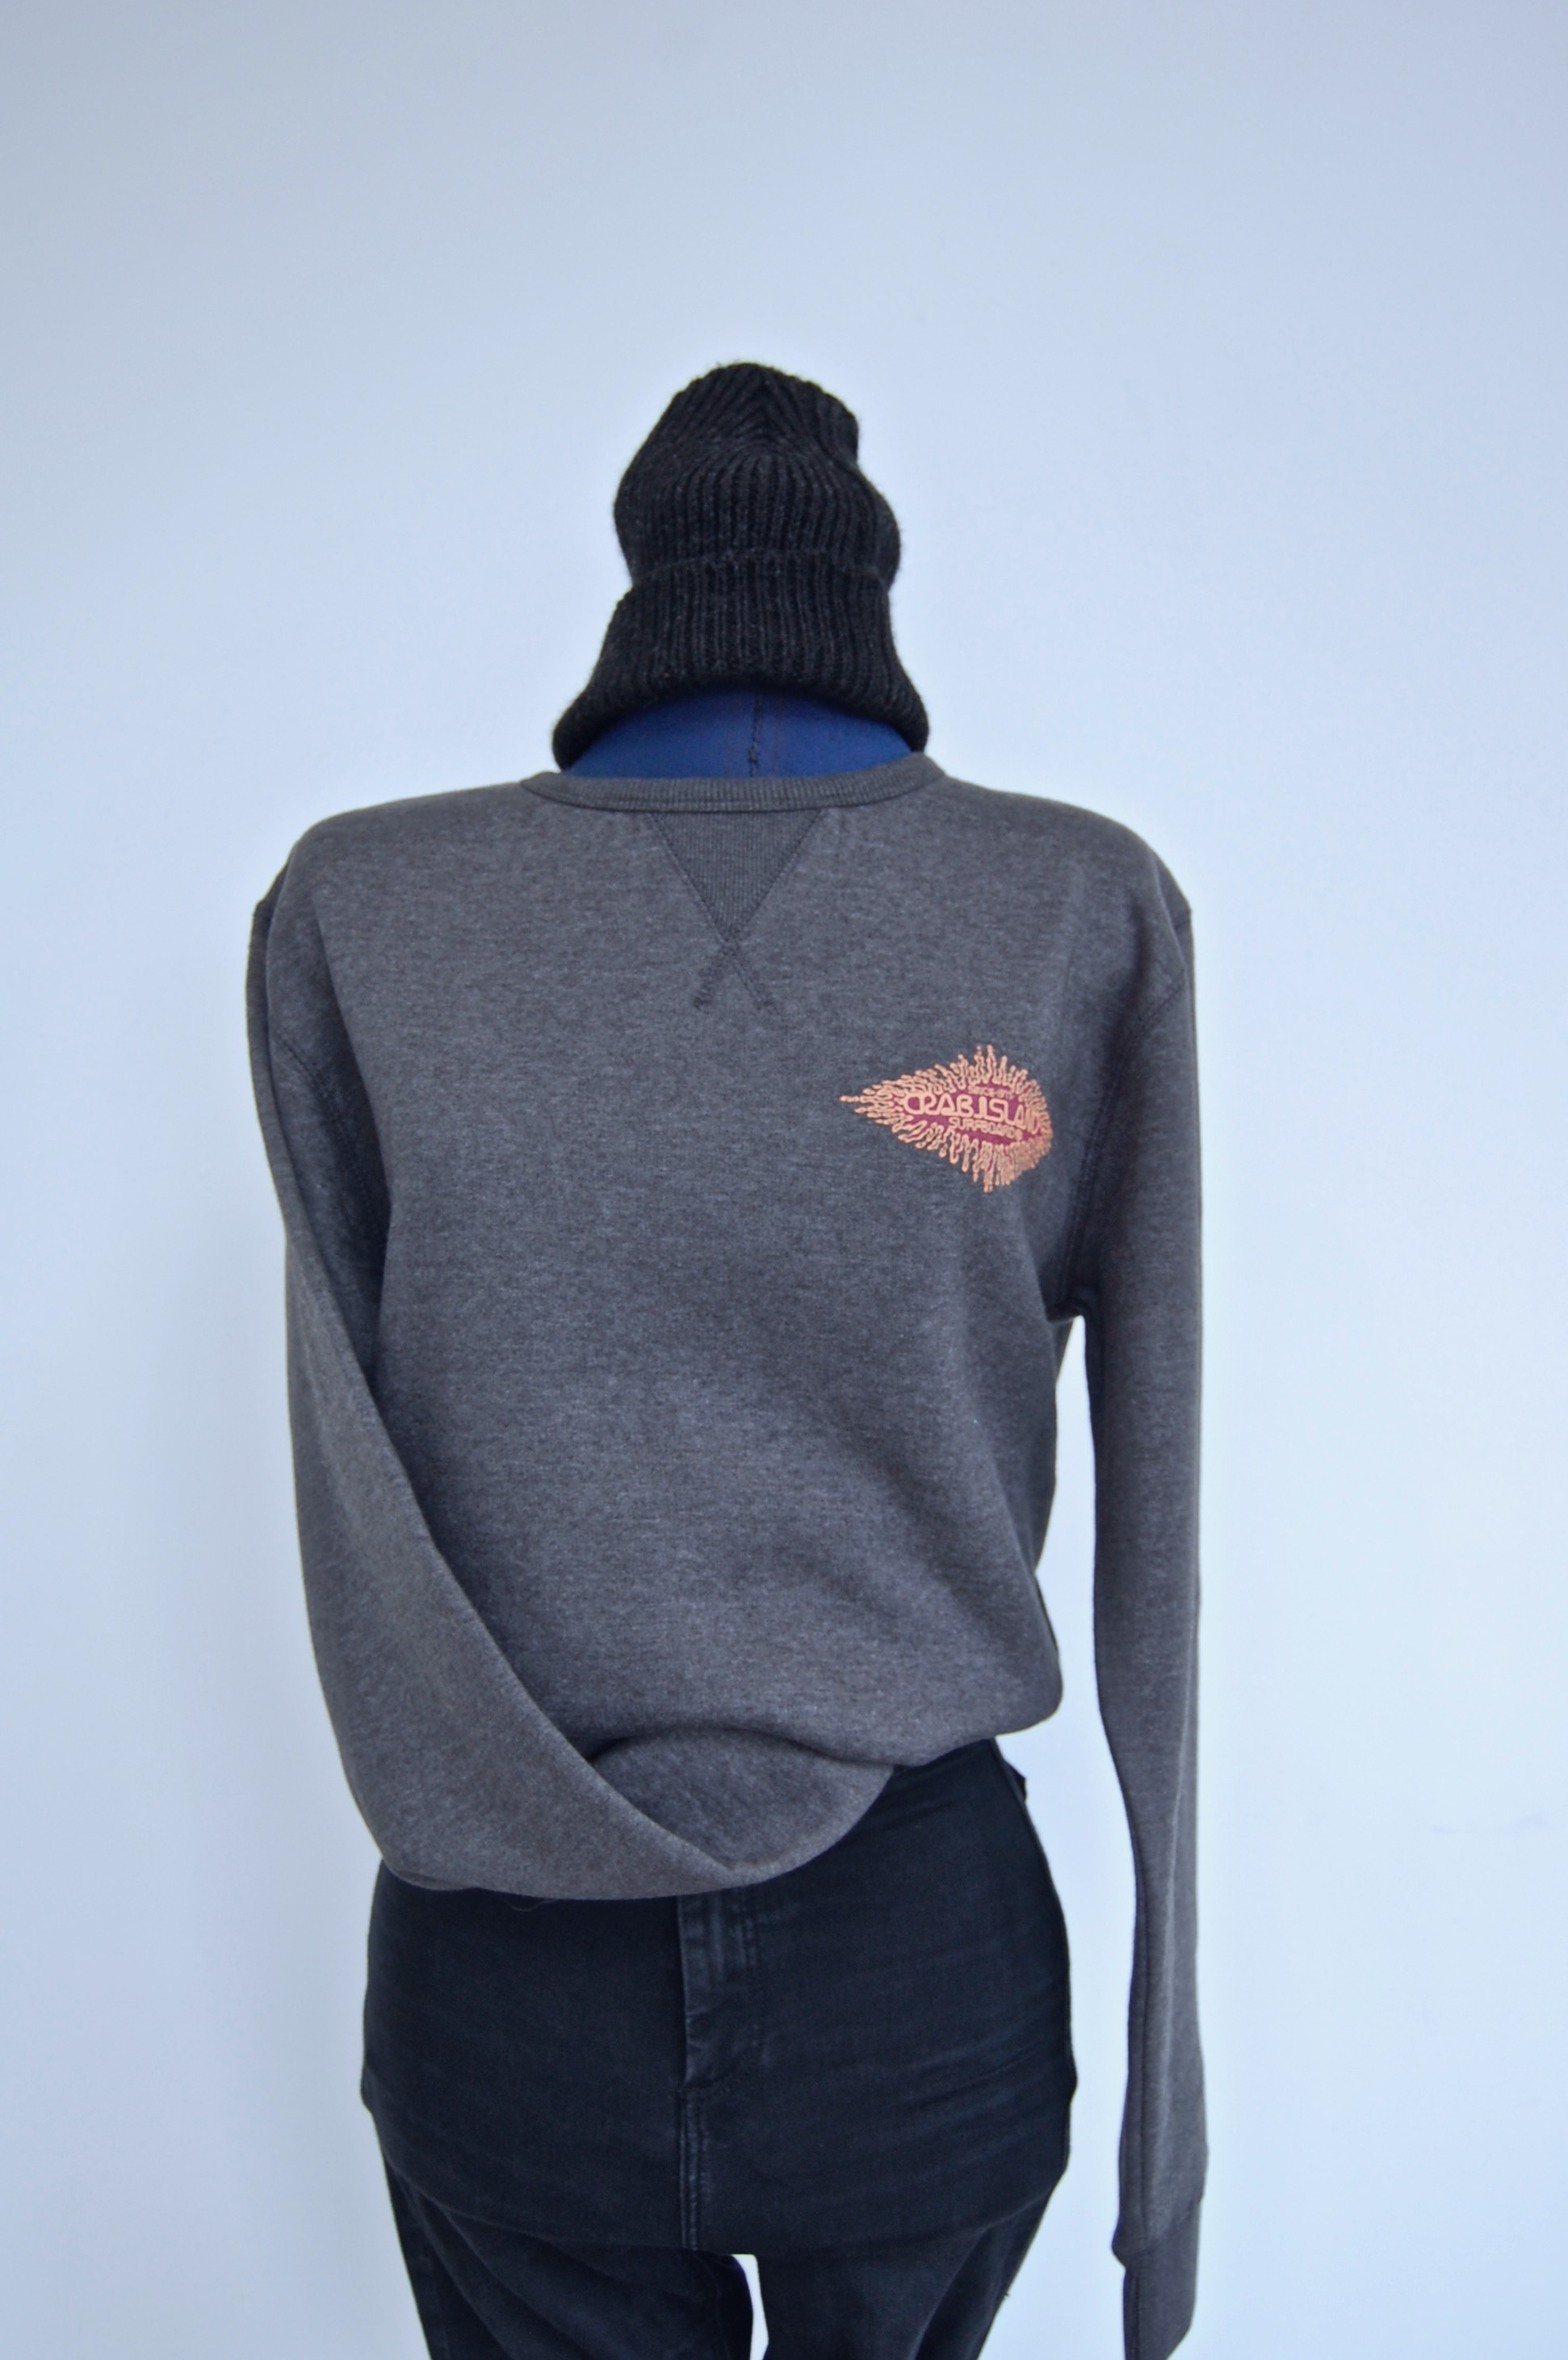 Dark grey jumper with Splash logo